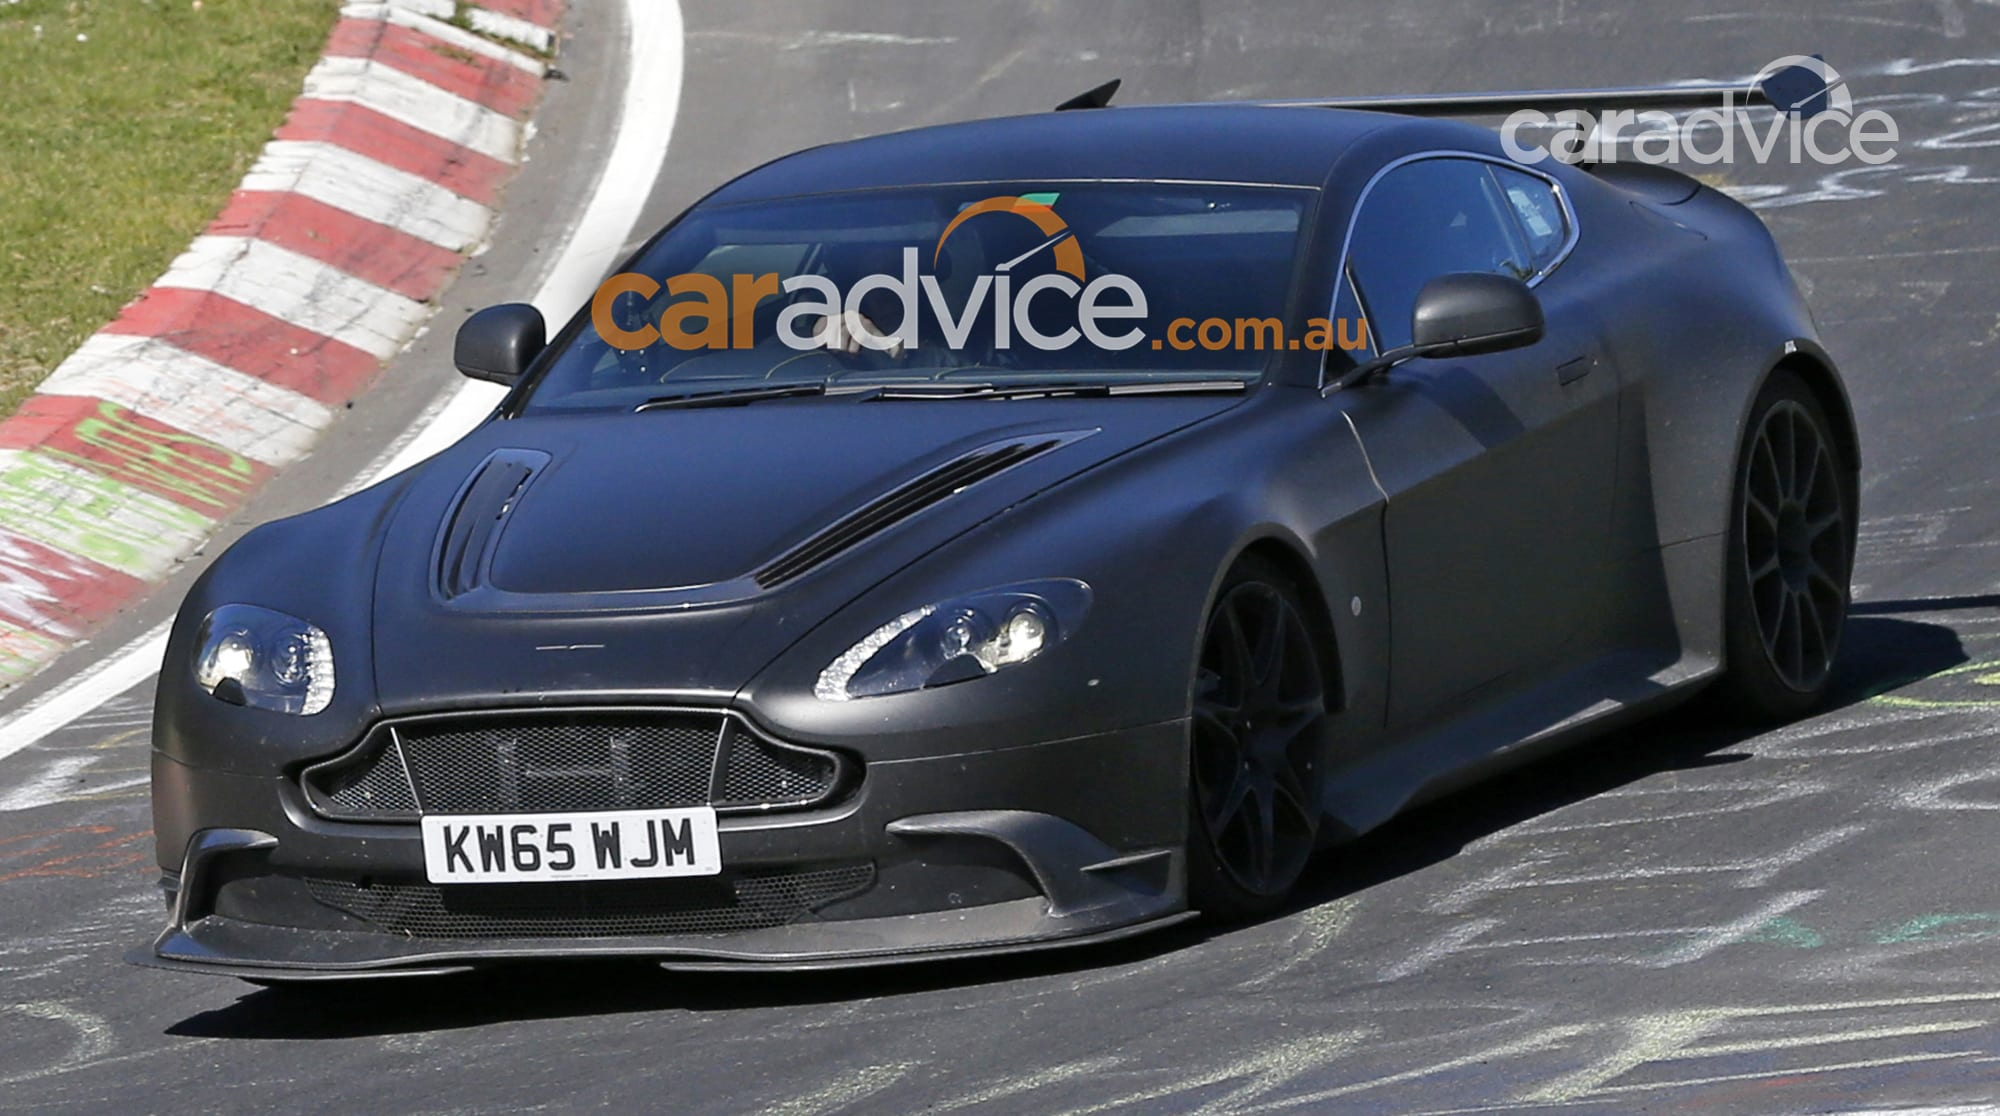 2016 Aston Martin Vantage Gt8 Spied Testing At The Nurburgring Caradvice